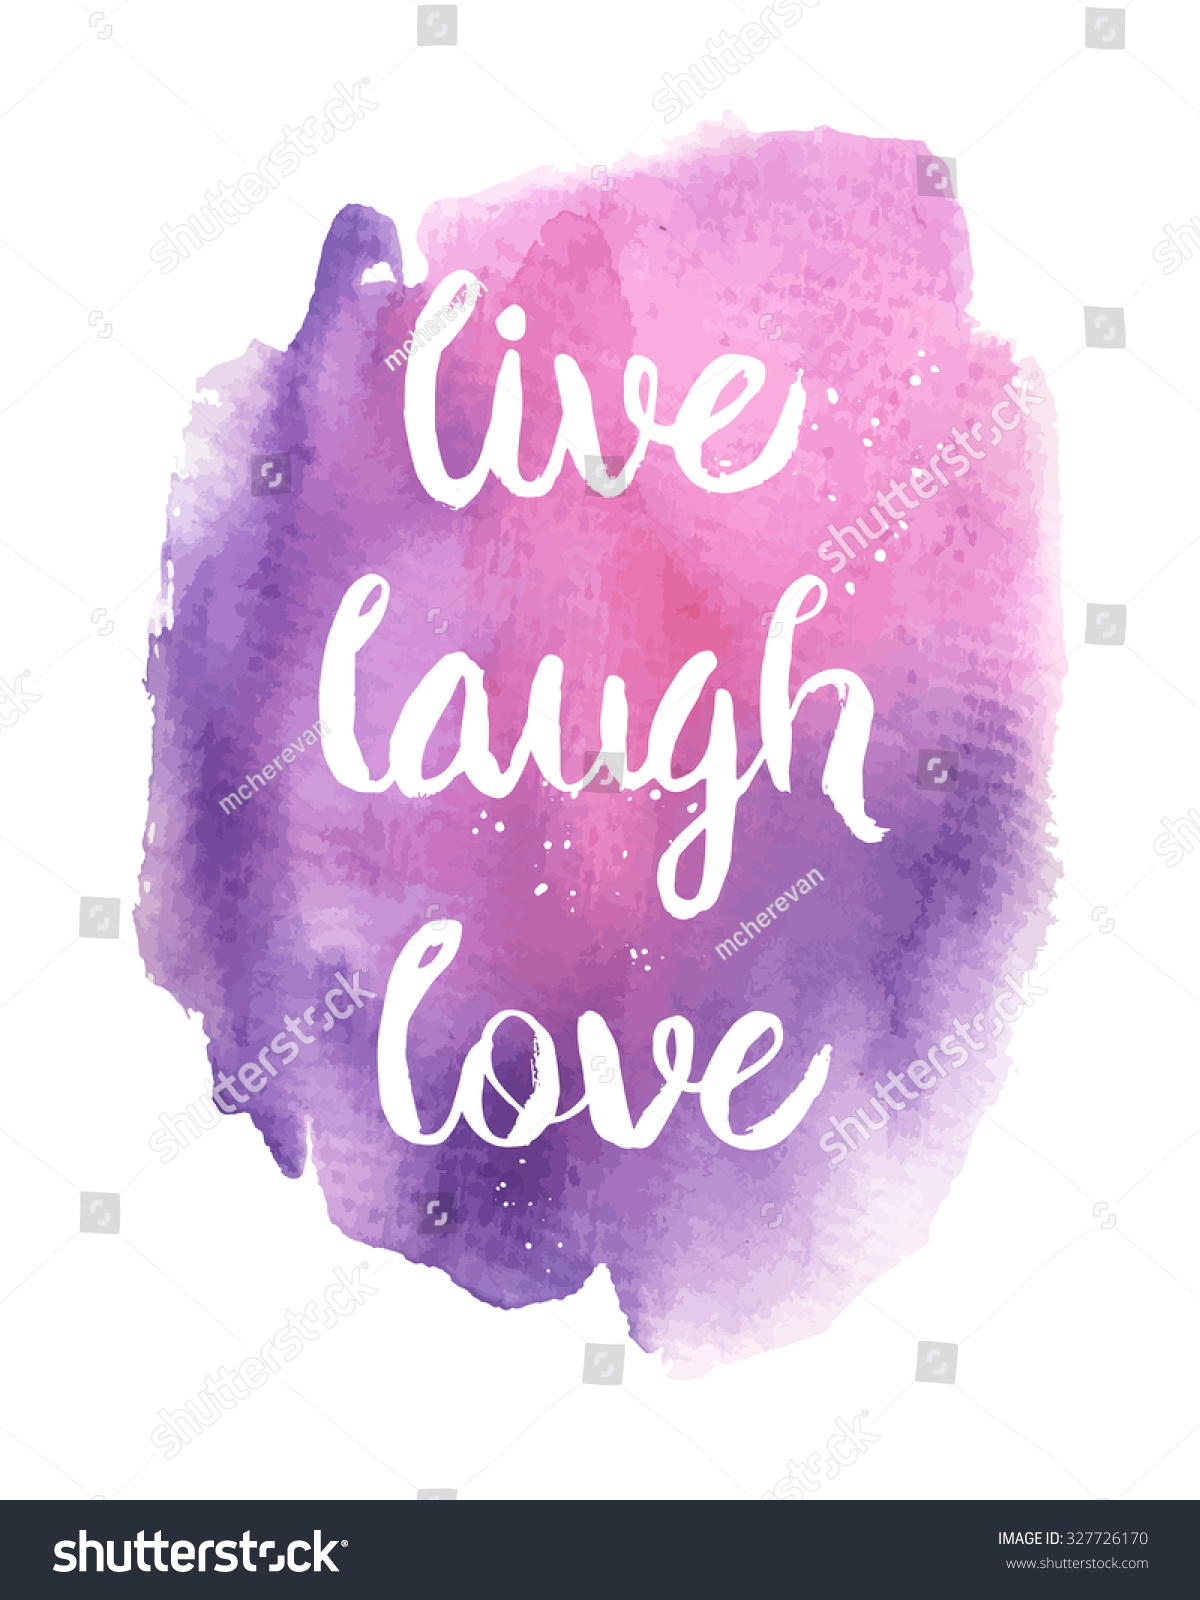 Live Laugh Love Inspirational Motivational Quote Stock